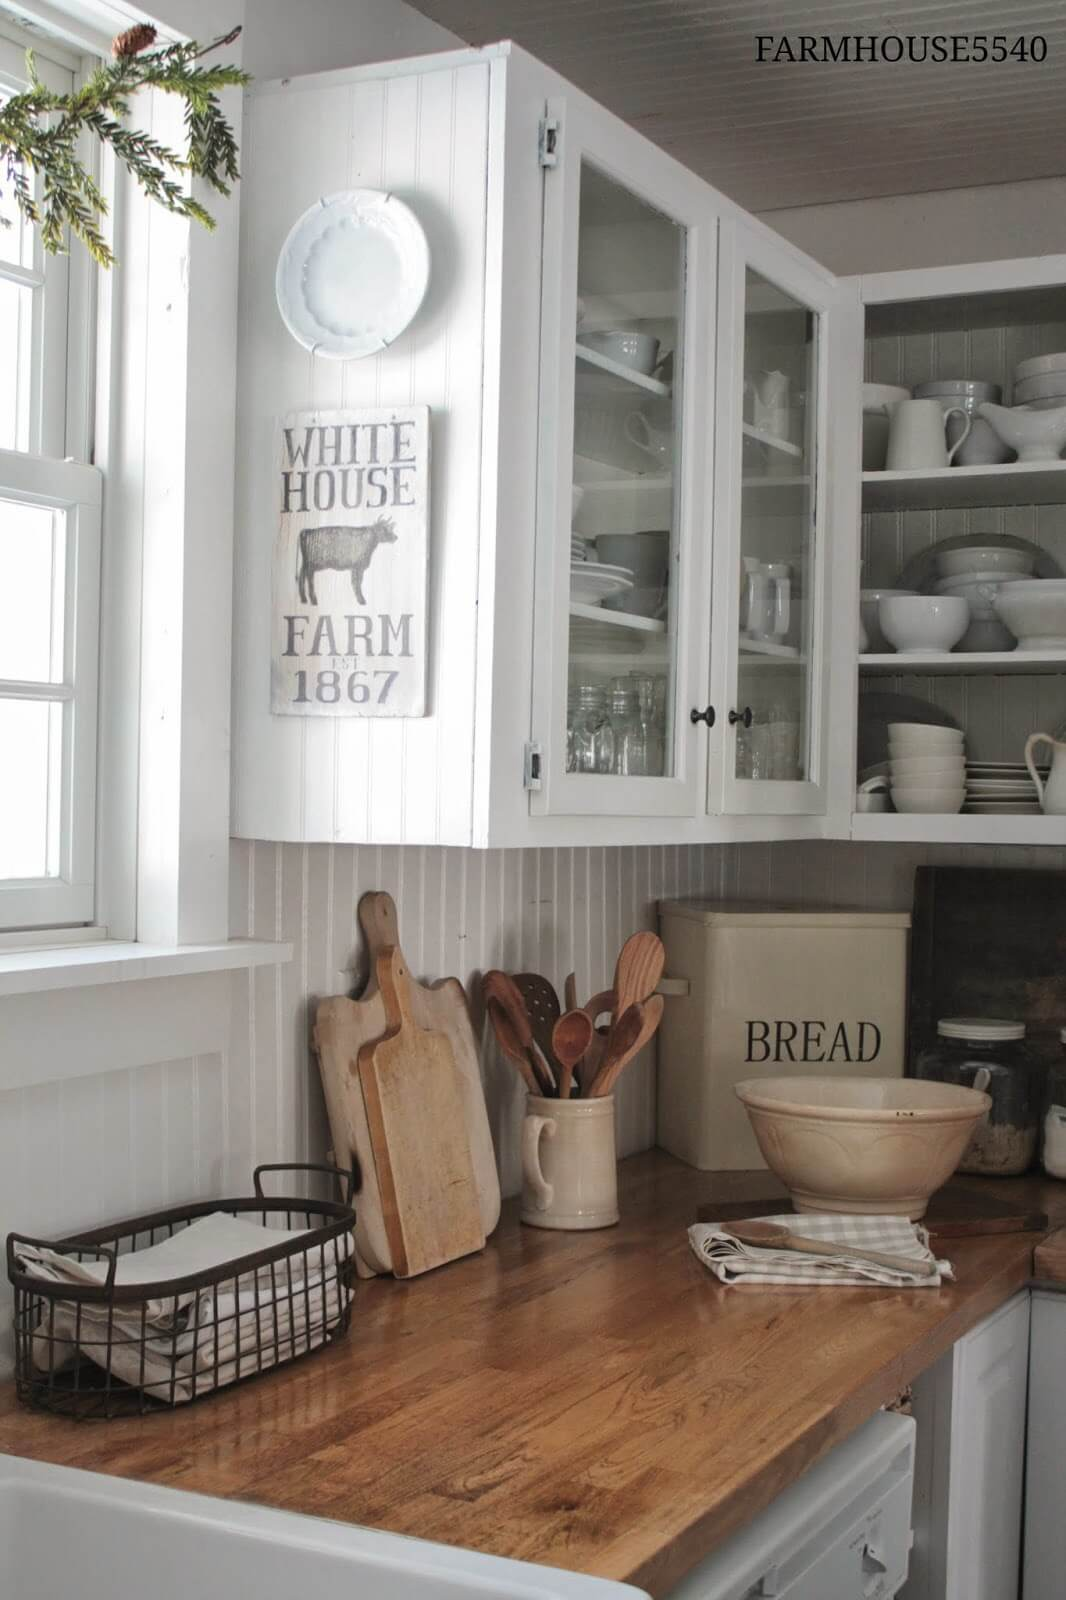 35 Best Farmhouse Kitchen Cabinet Ideas and Designs for 2020 on Farmhouse Kitchen Ideas  id=58898